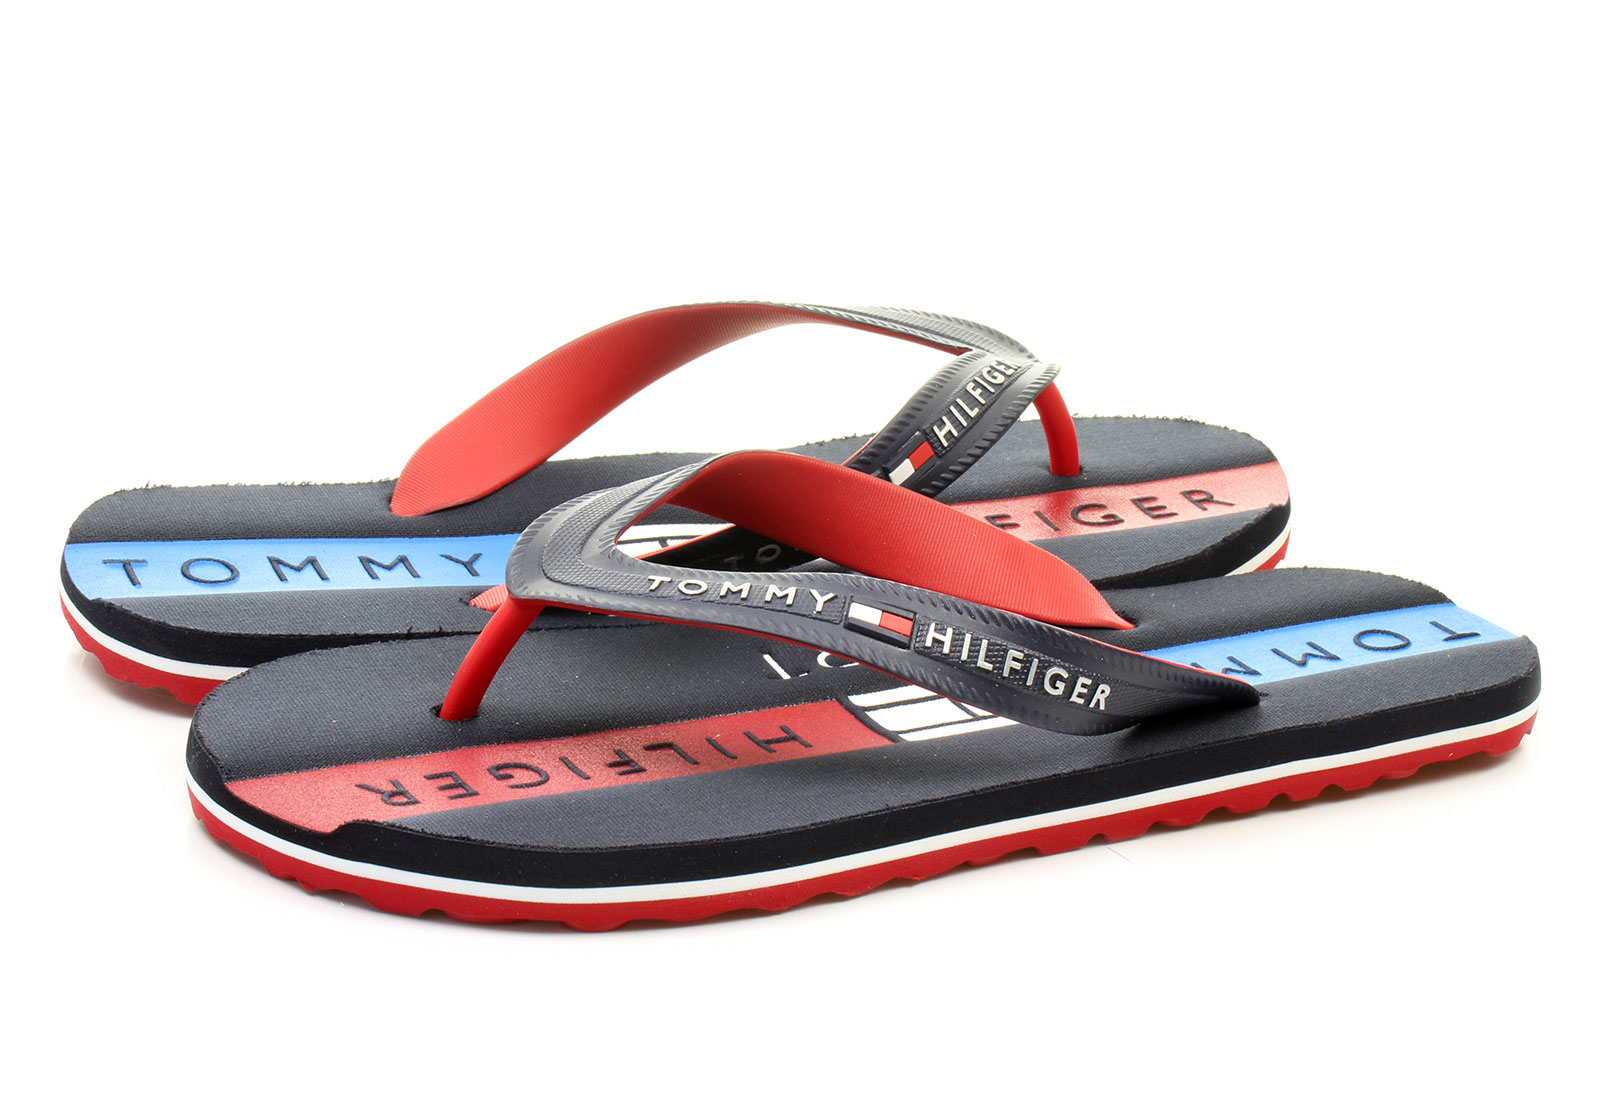 details for latest closer at Tommy Hilfiger Slippers - Lane 1r Sport - 16S-1068-403 - Online shop for  sneakers, shoes and boots